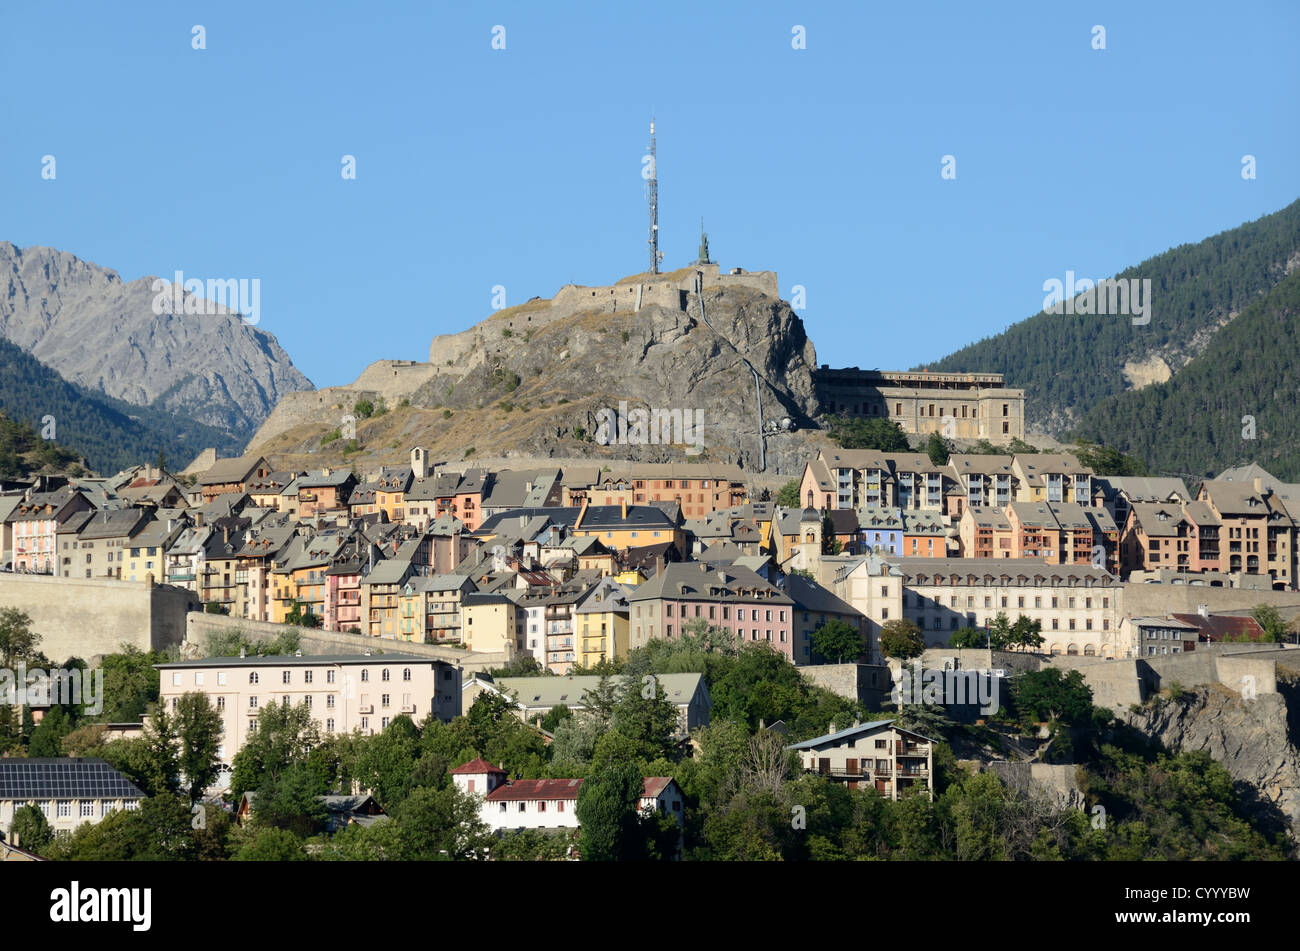 Town Citadel and Vauban Fortifications Briançon Hautes-Alpes France - Stock Image